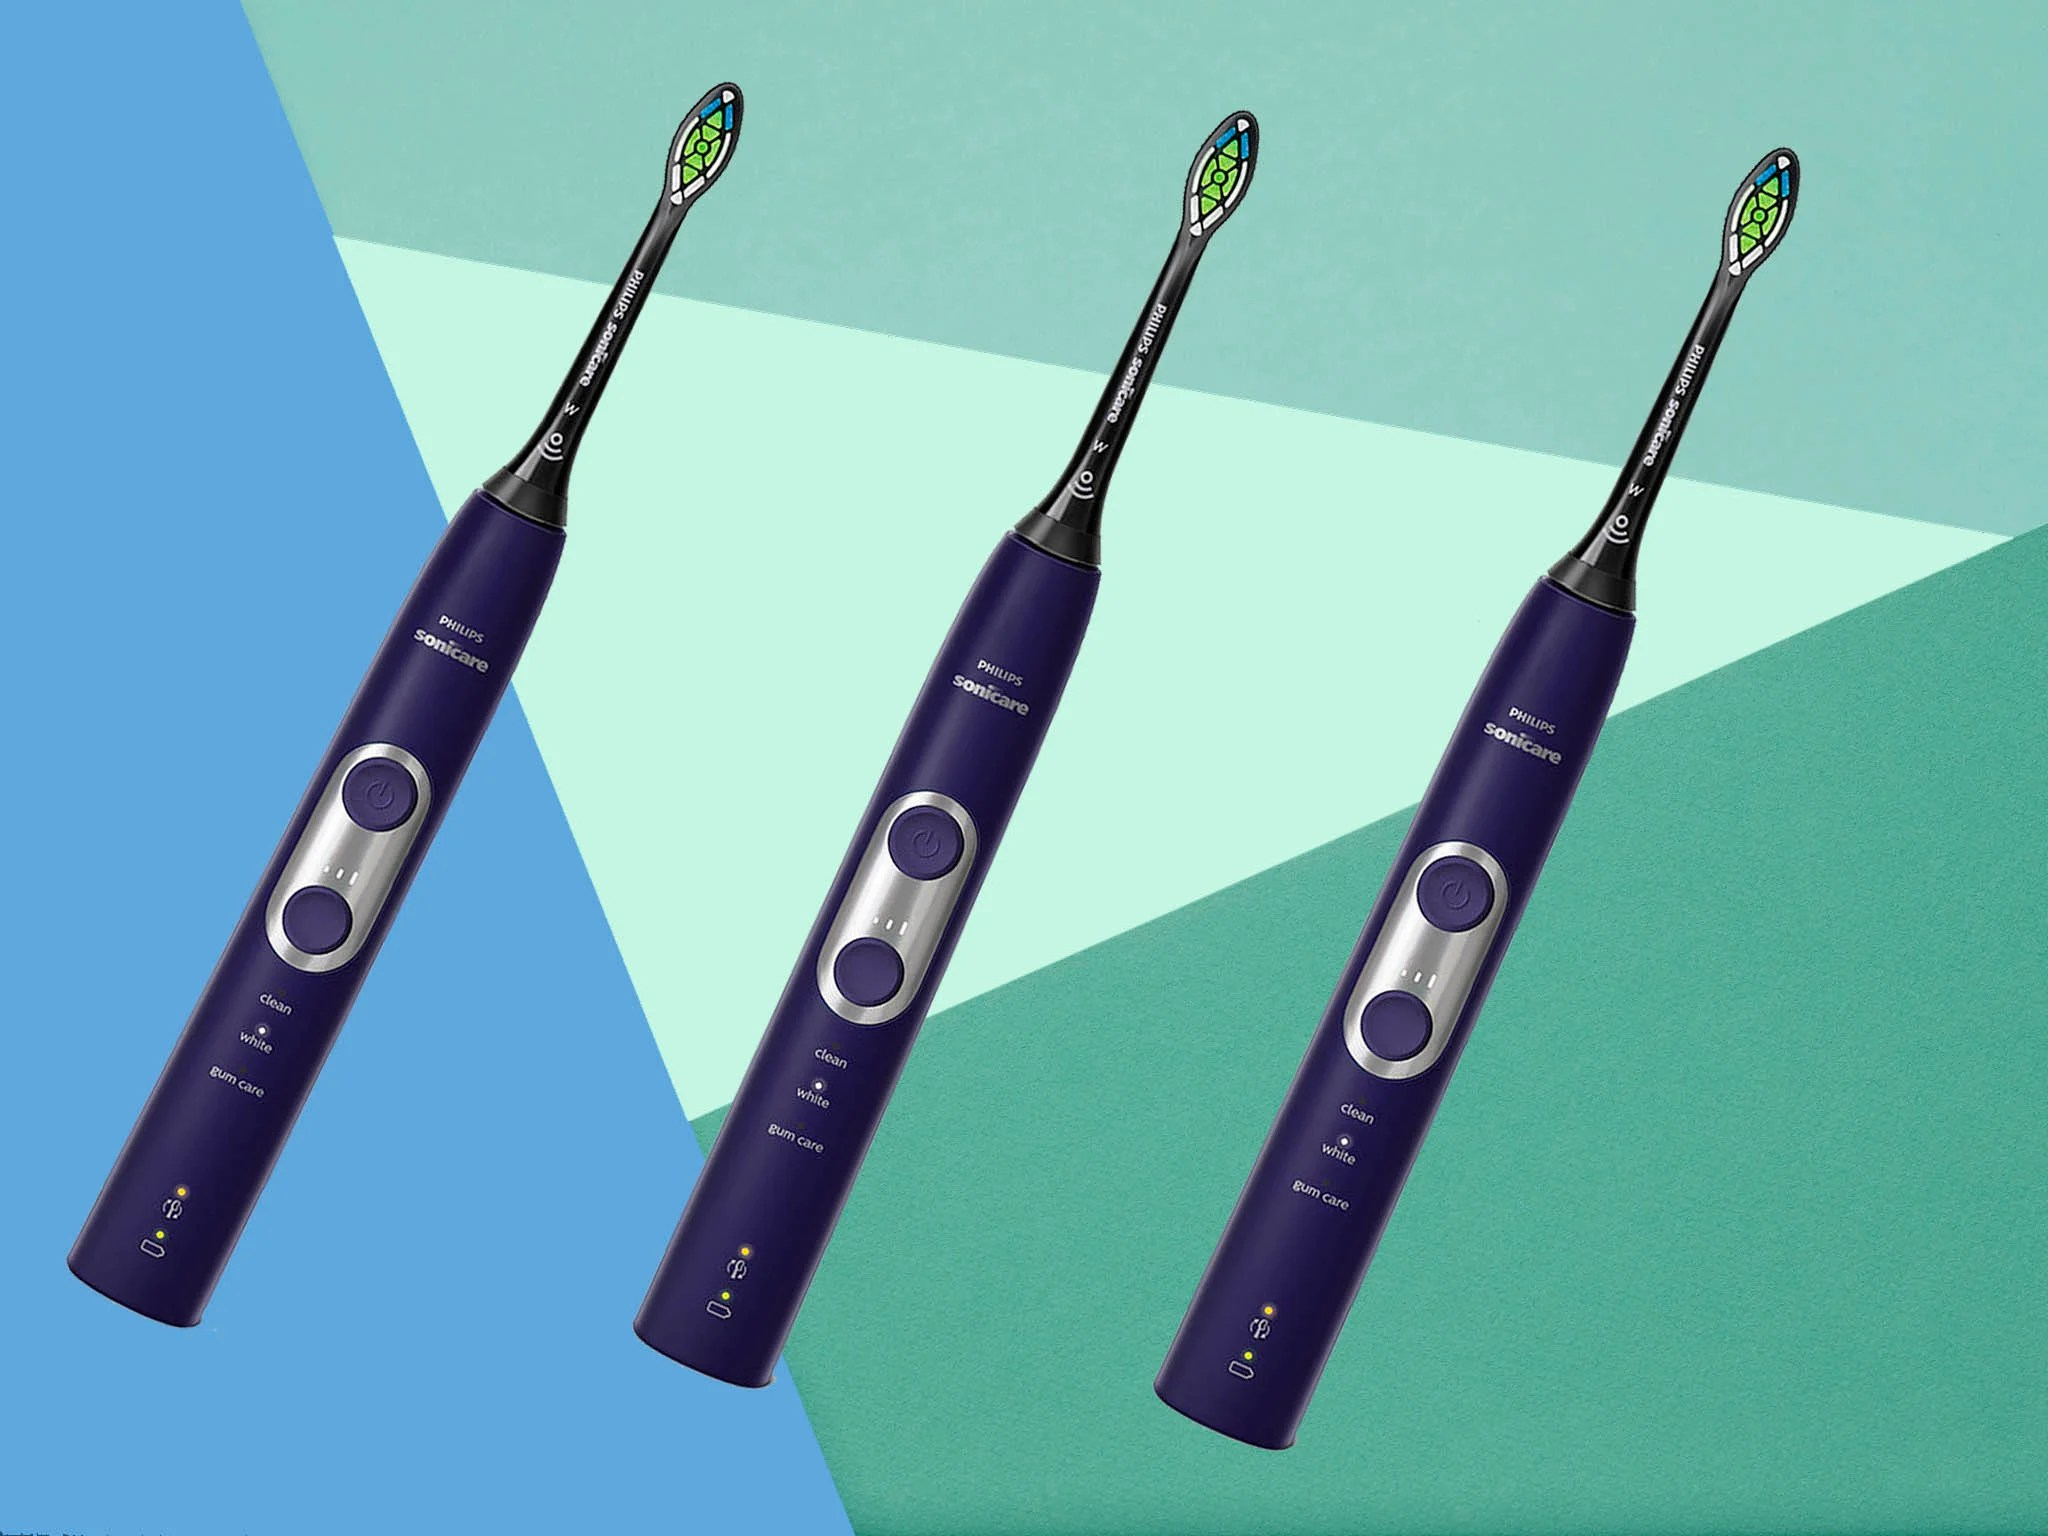 Big W Electric Toothbrush Best Electric Toothbrush For Optimum Cleaning And Oral Health